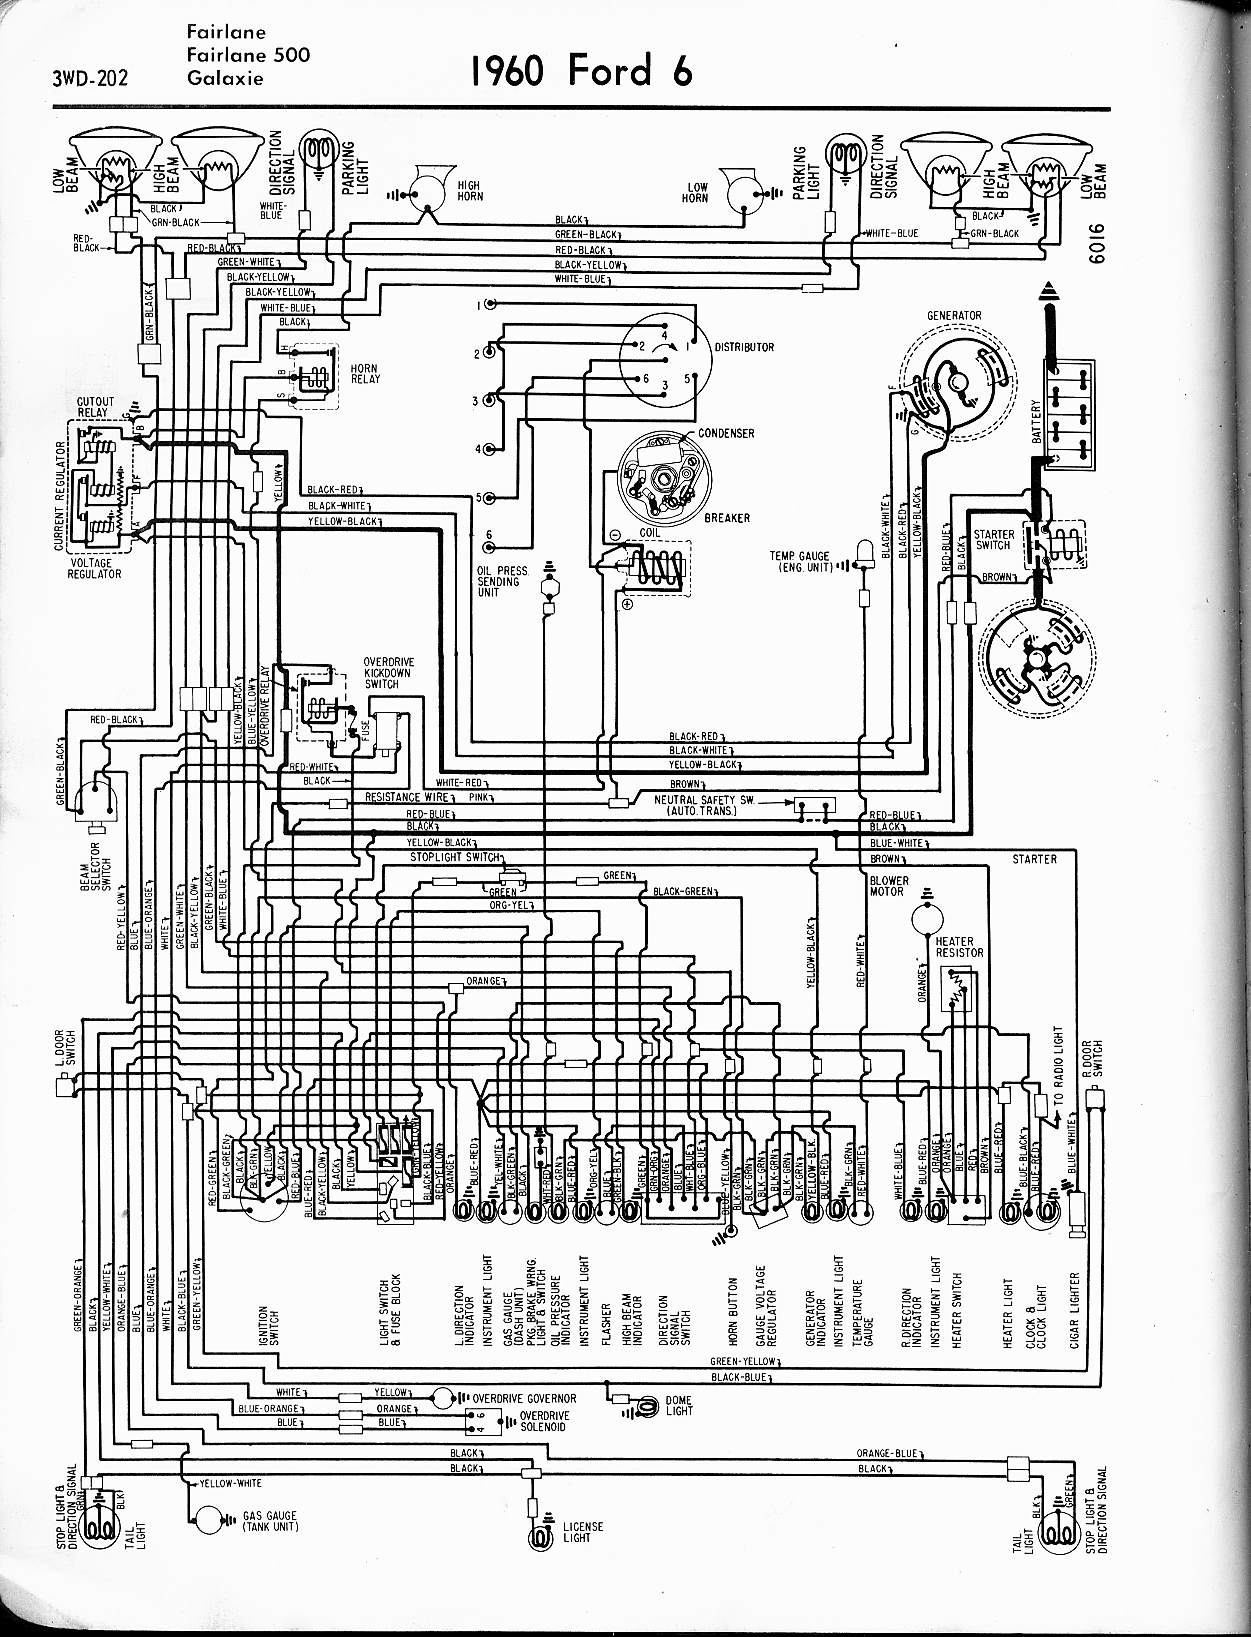 1954 Ford Wiring Diagram Detailed Schematics 2002 F250 Diagrams Free Download Schematic 57 65 1964